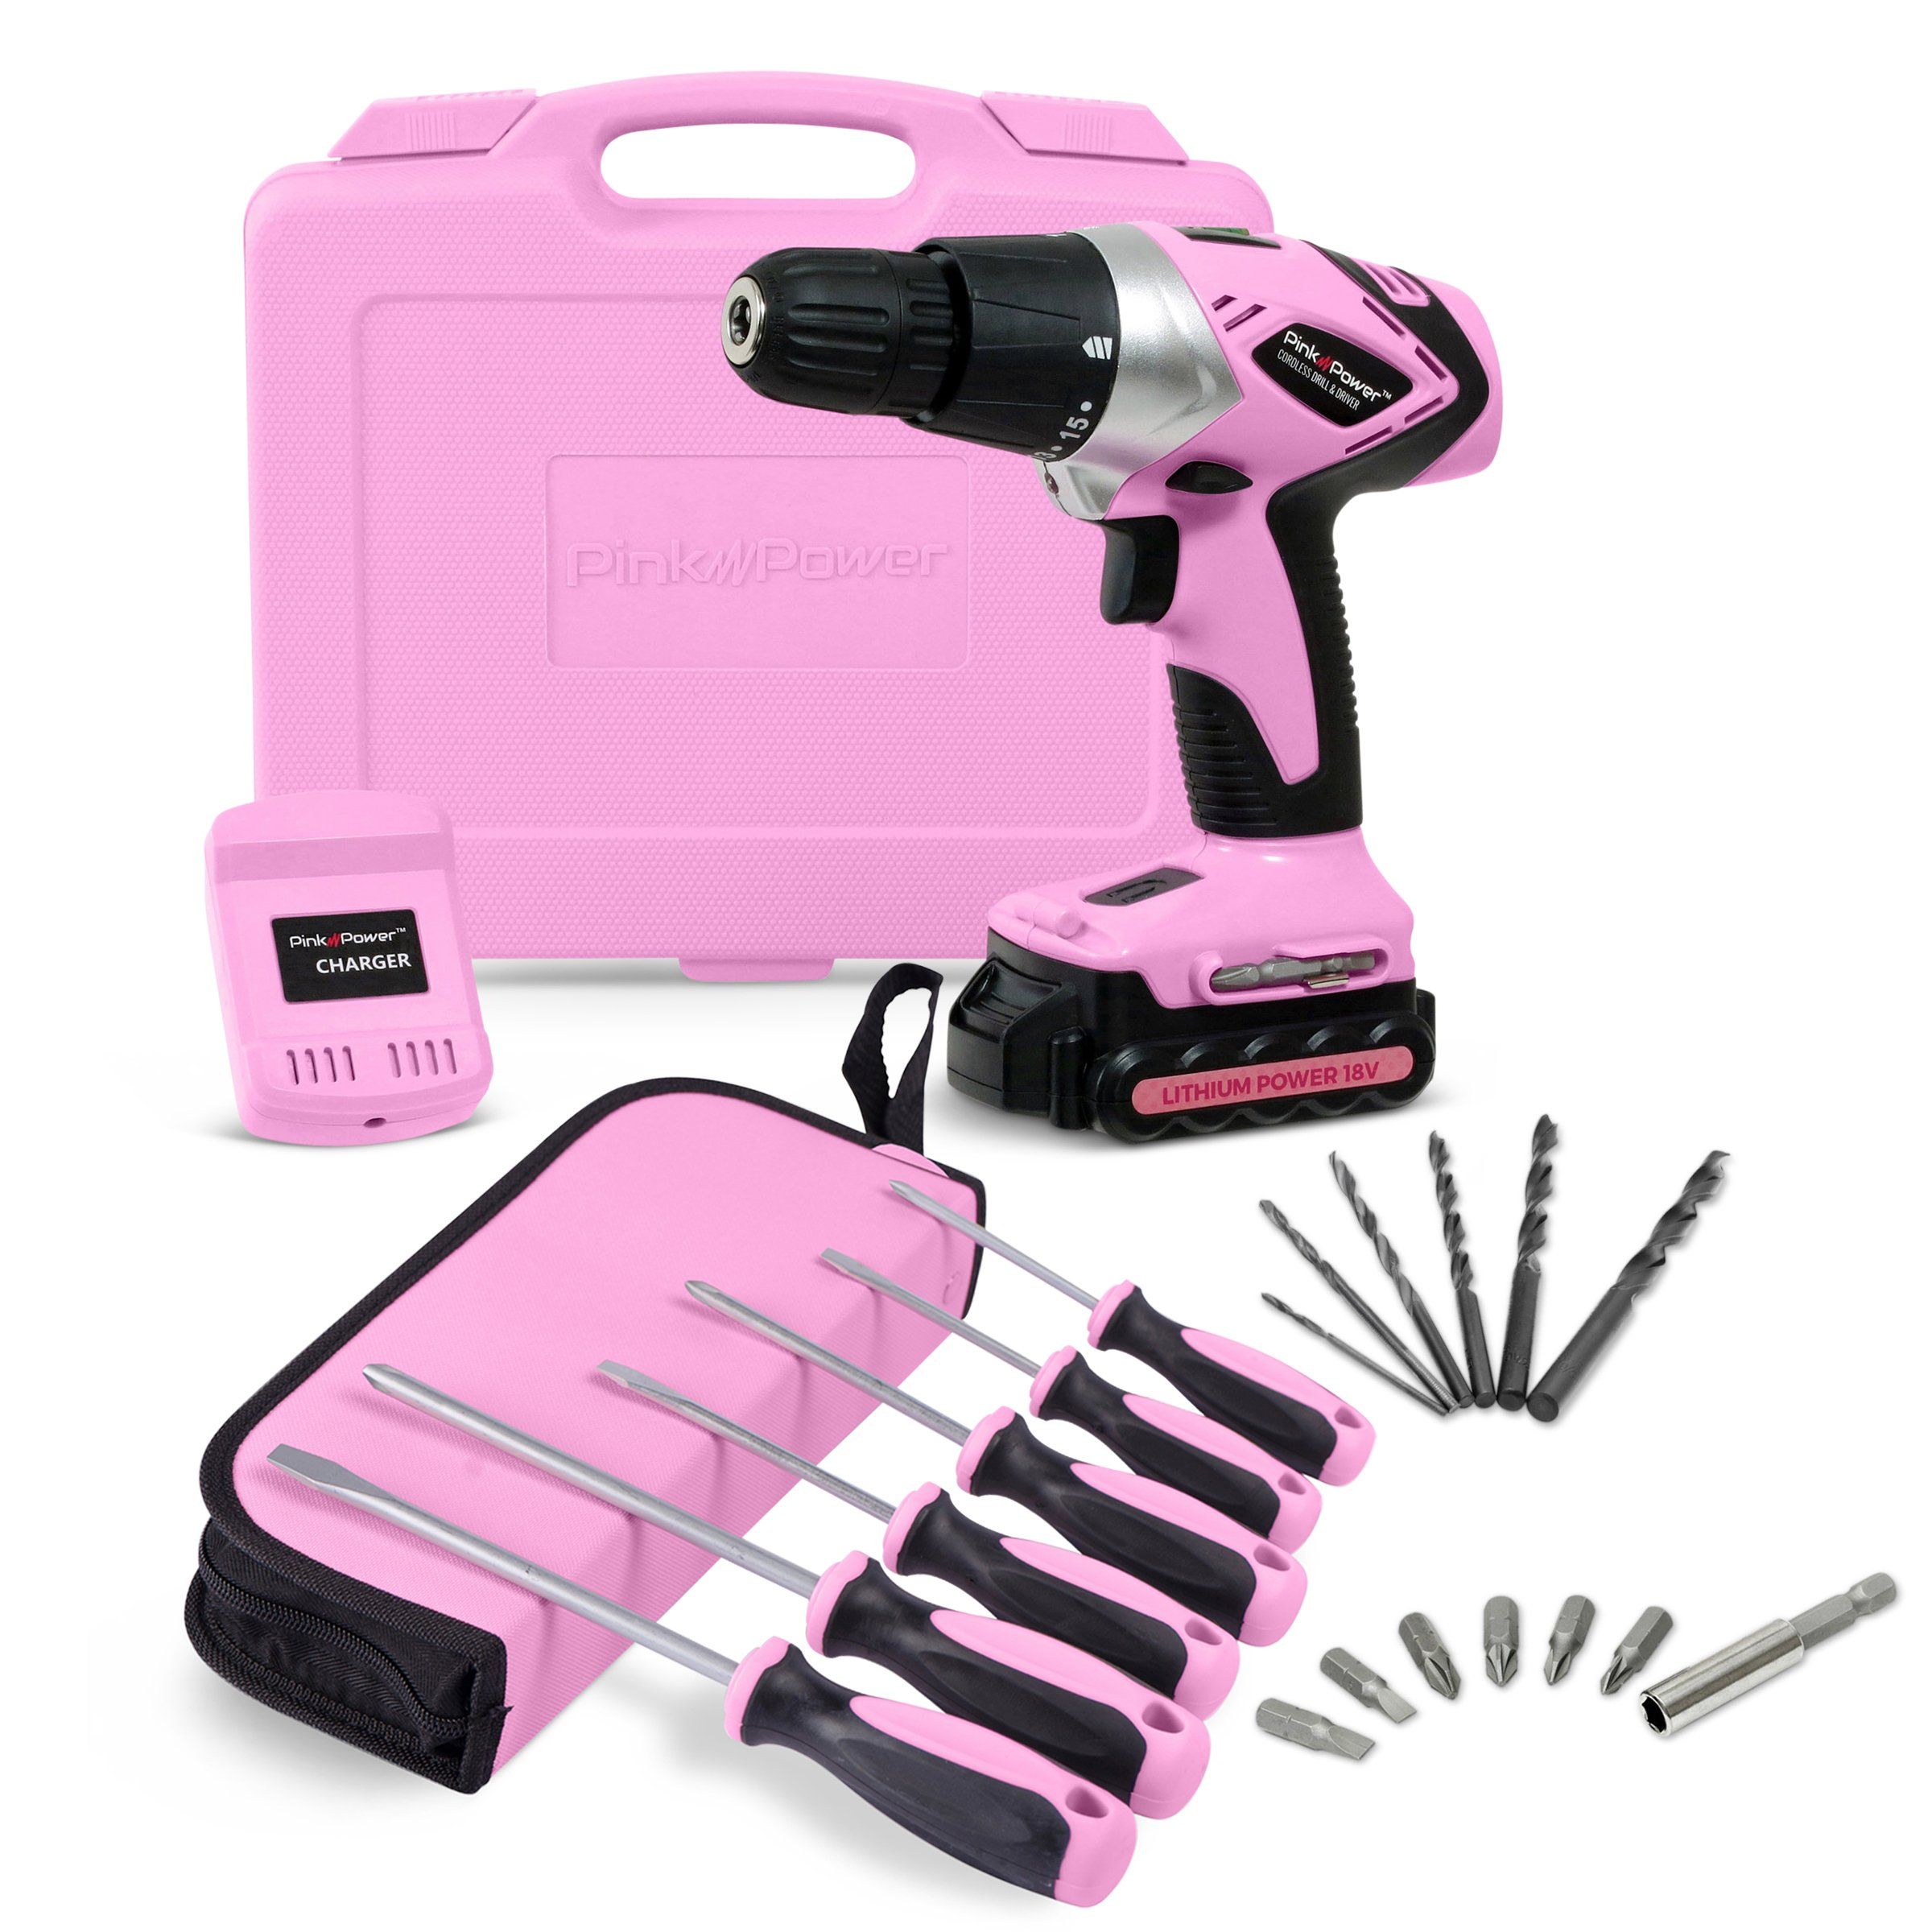 Pink Power PP181LI 18 Volt Lithium-Ion Cordless Electric Drill Kit & 6 Piece Screwdriver Set for Women